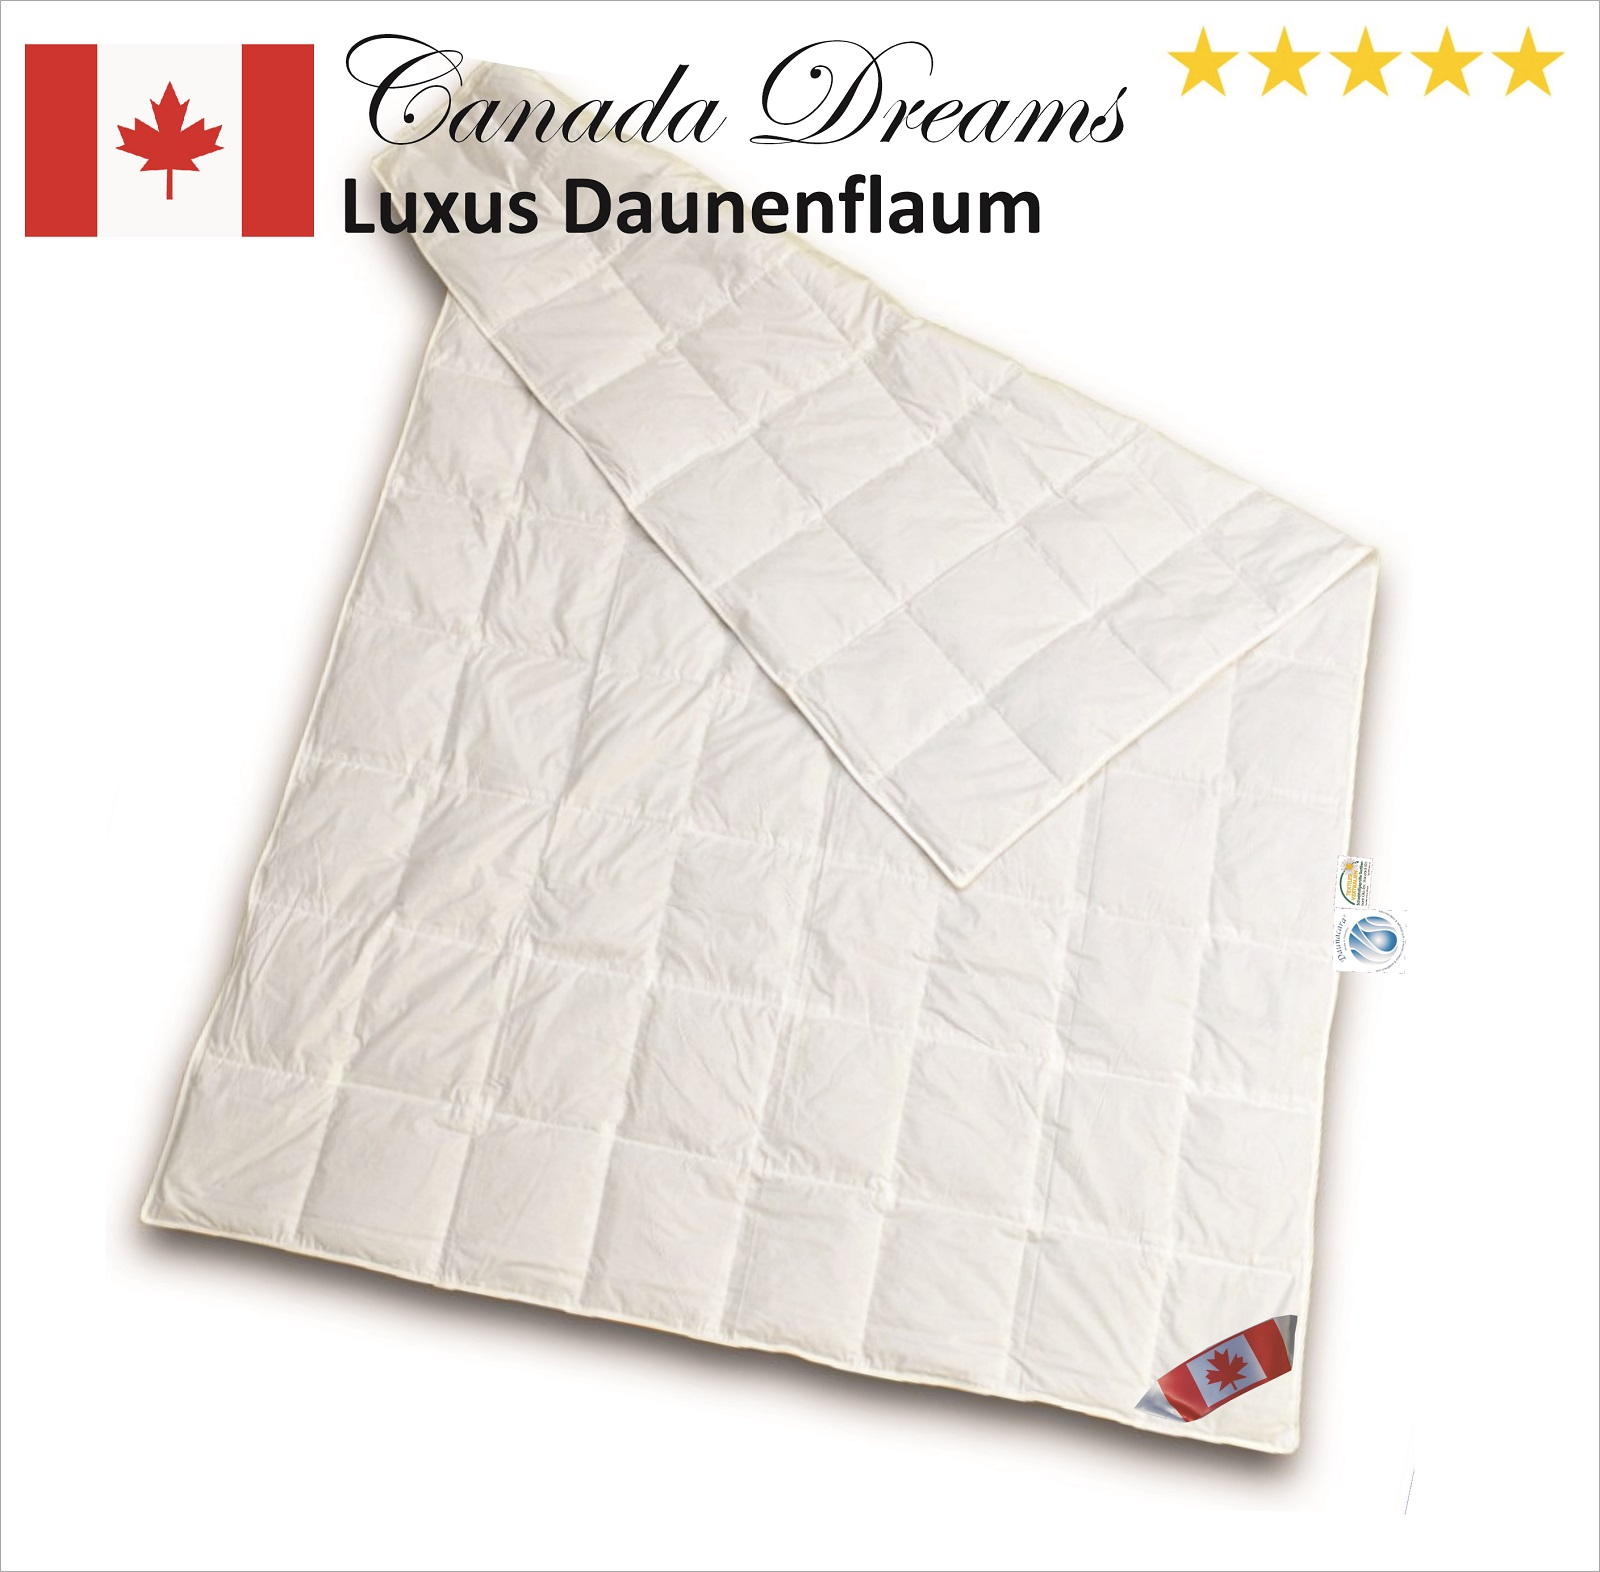 Canada Dreams Luxus Übergangs Daunendecke Daunenflaum CD 2 135x200